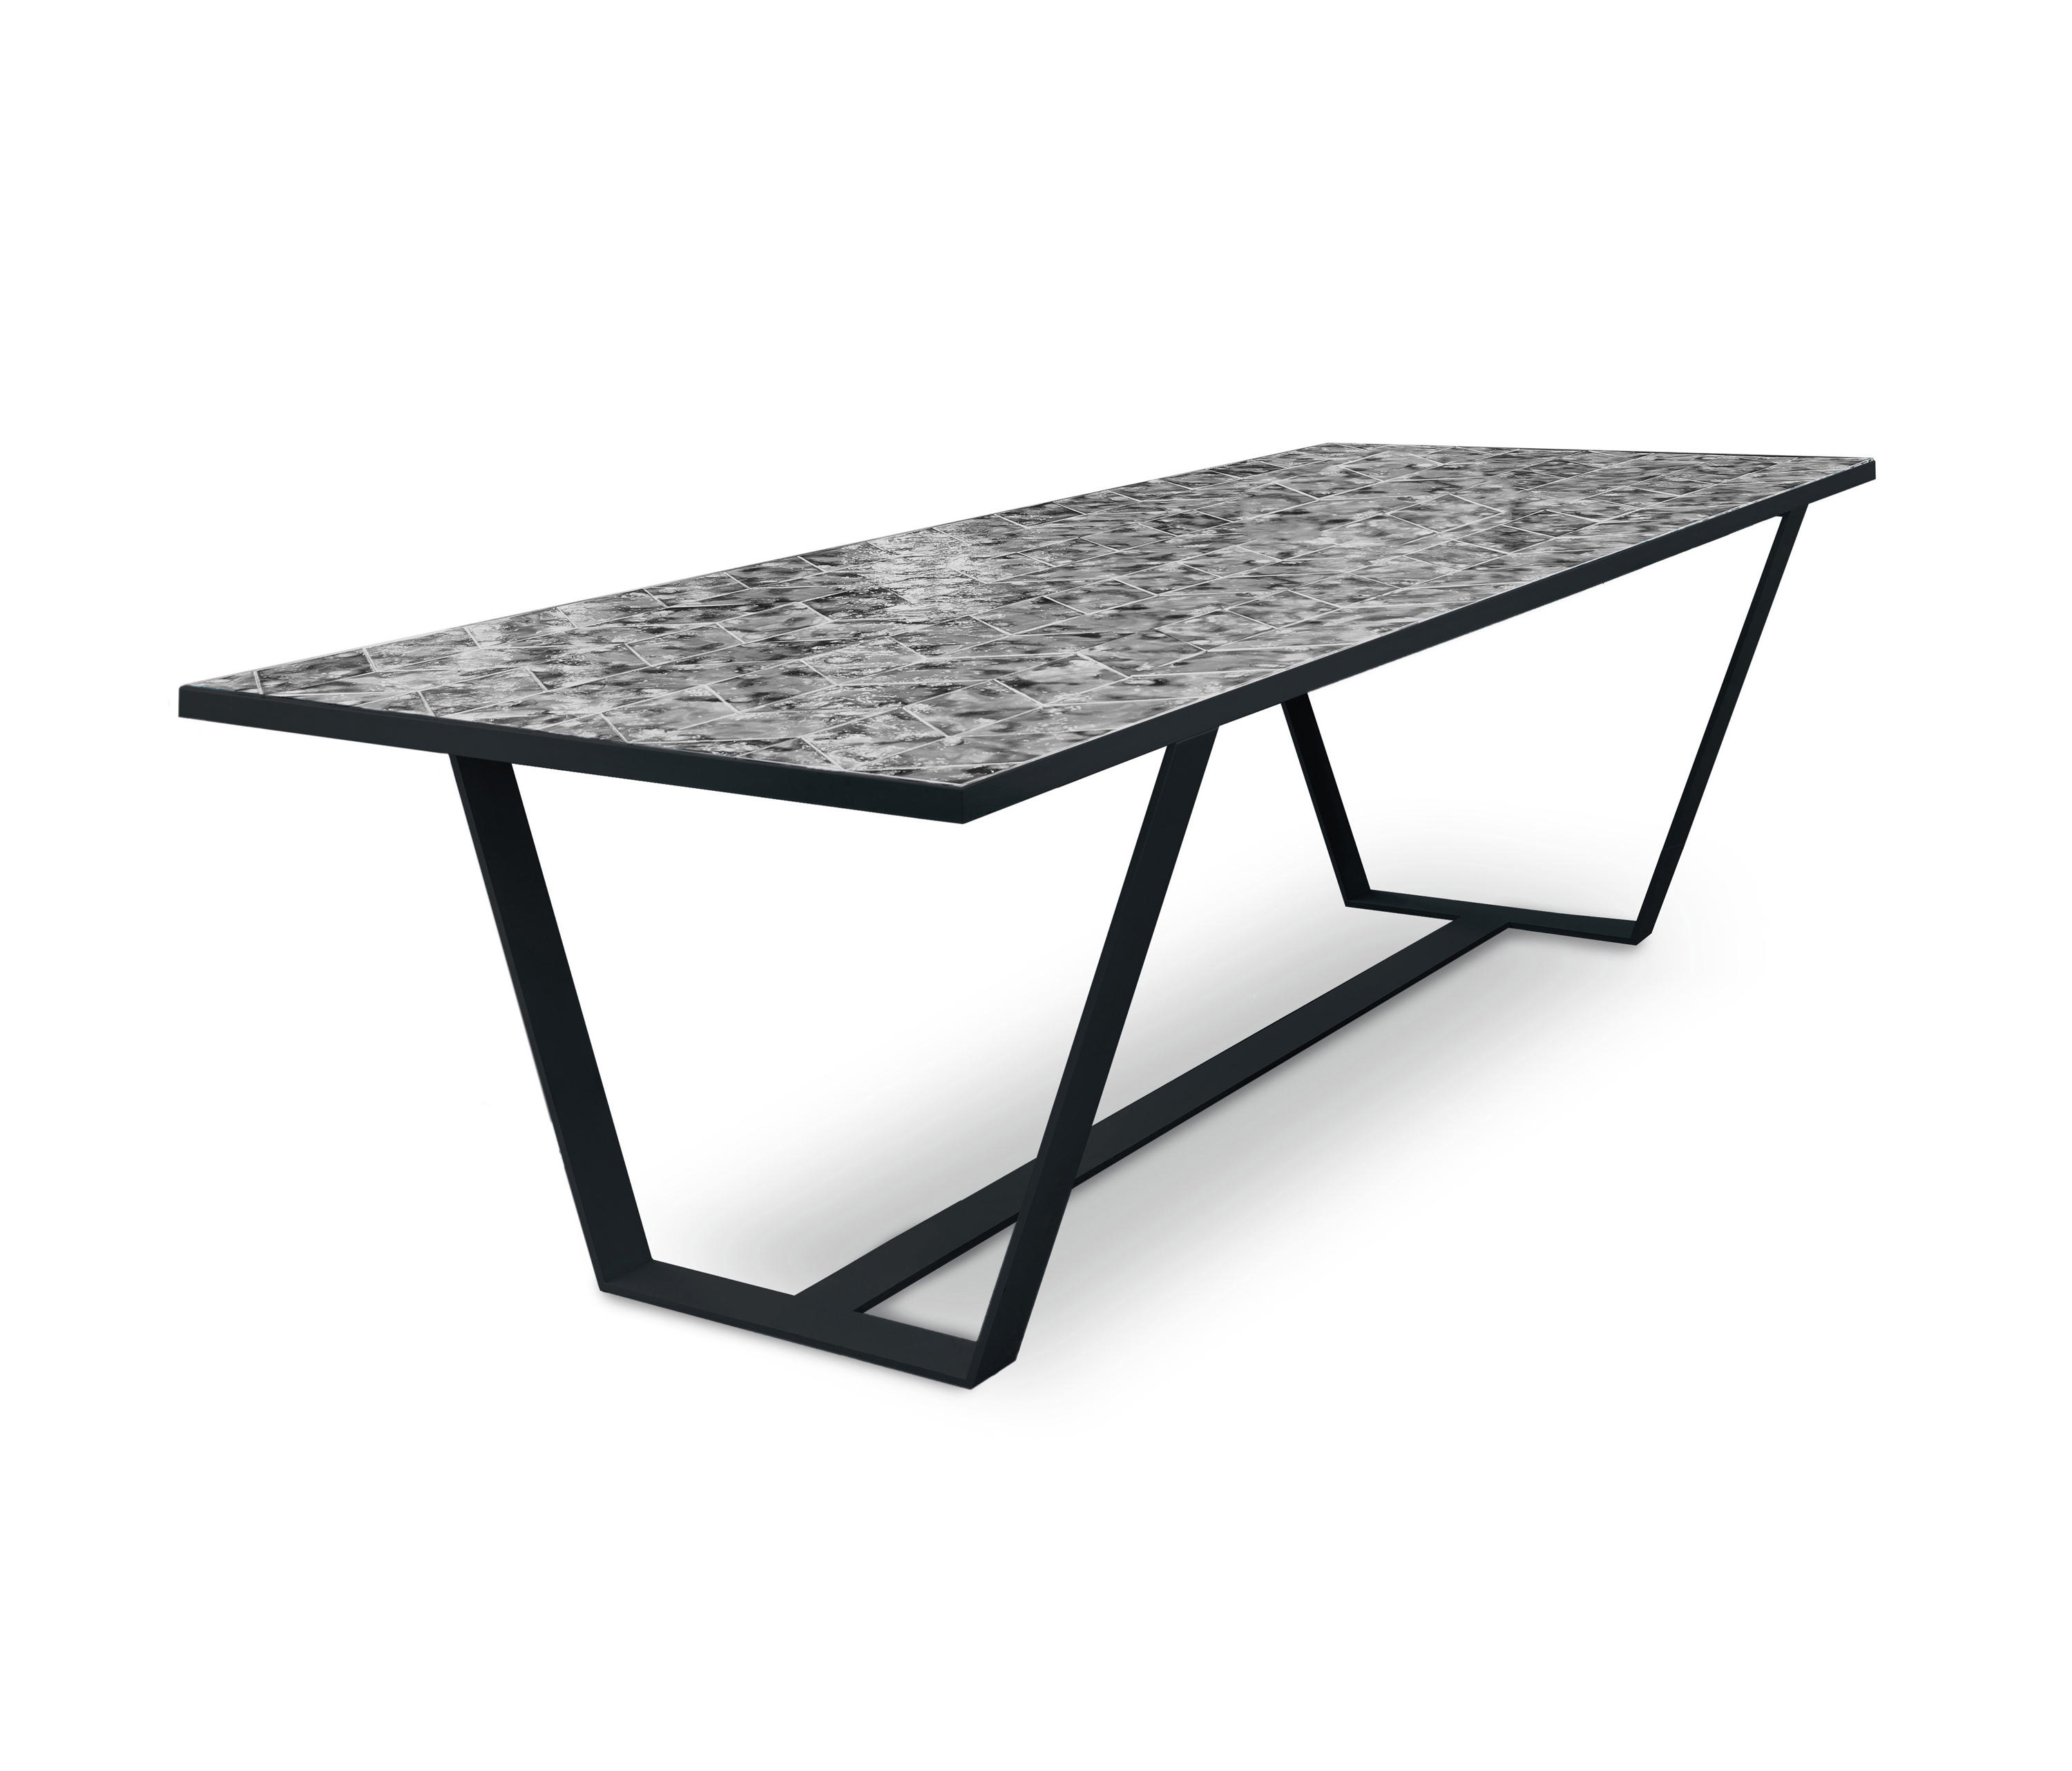 Baker Island Table By Villevenete | Dining Tables